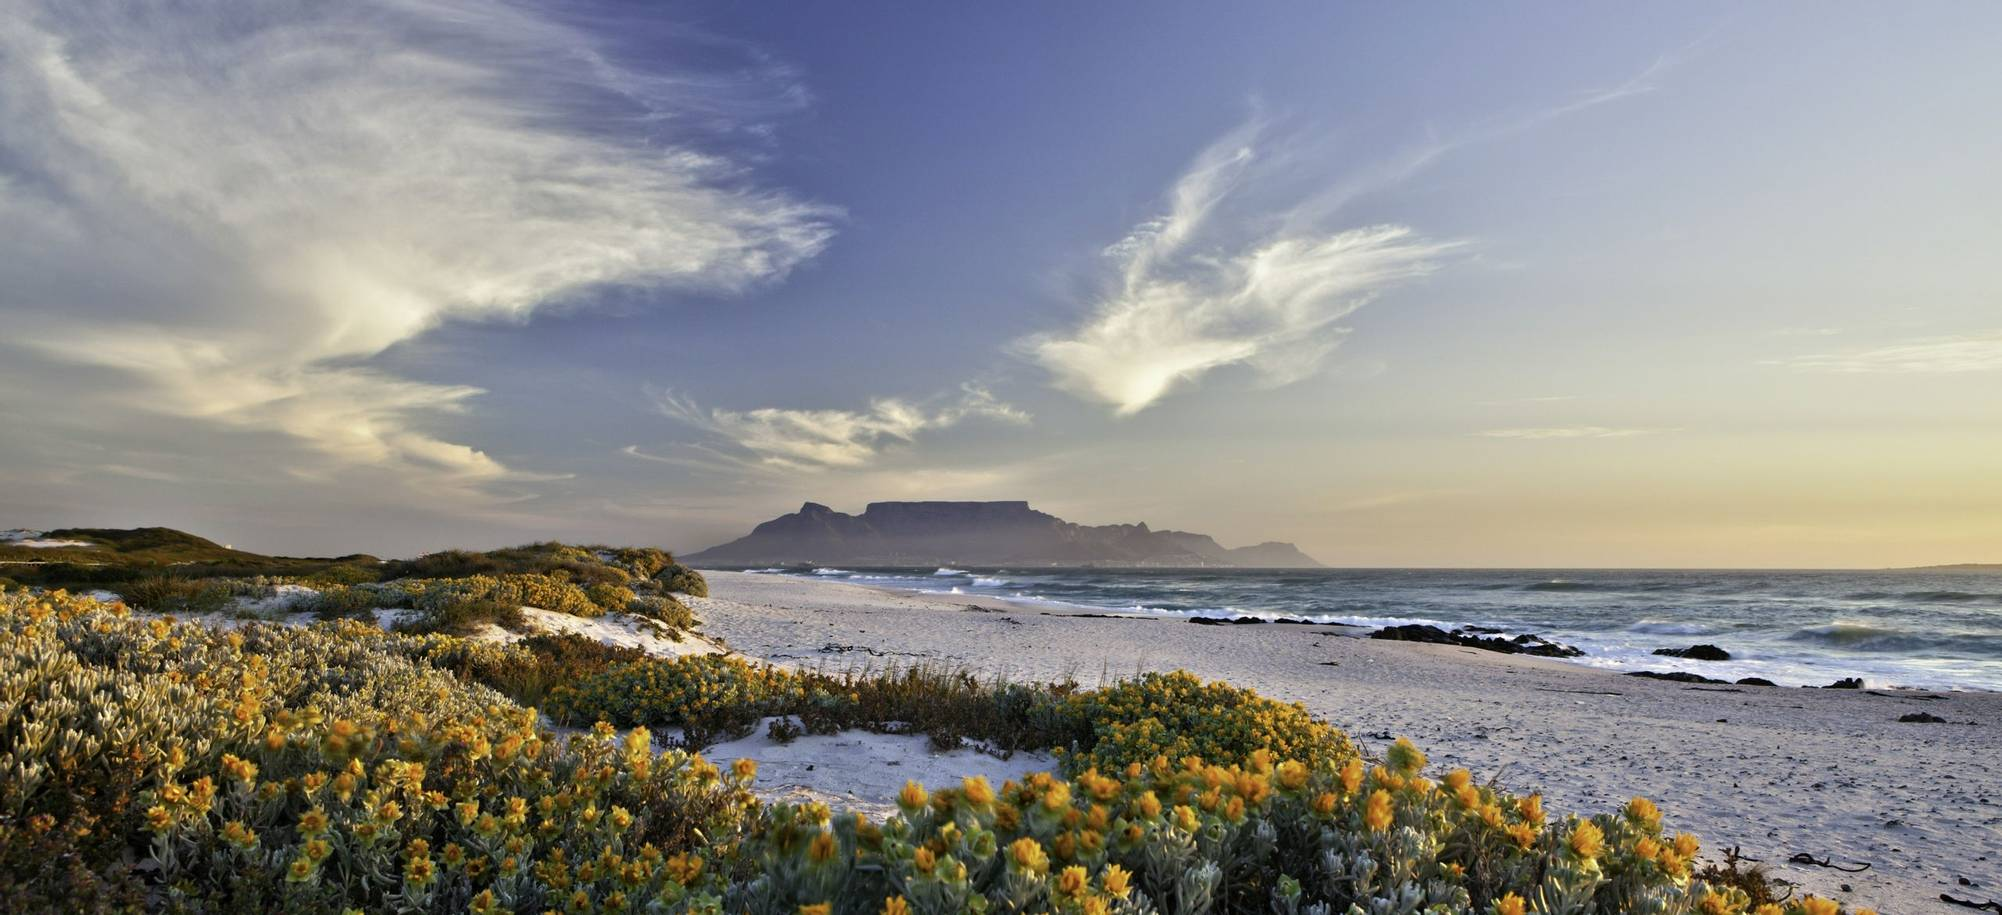 landmark travel destination in south africa